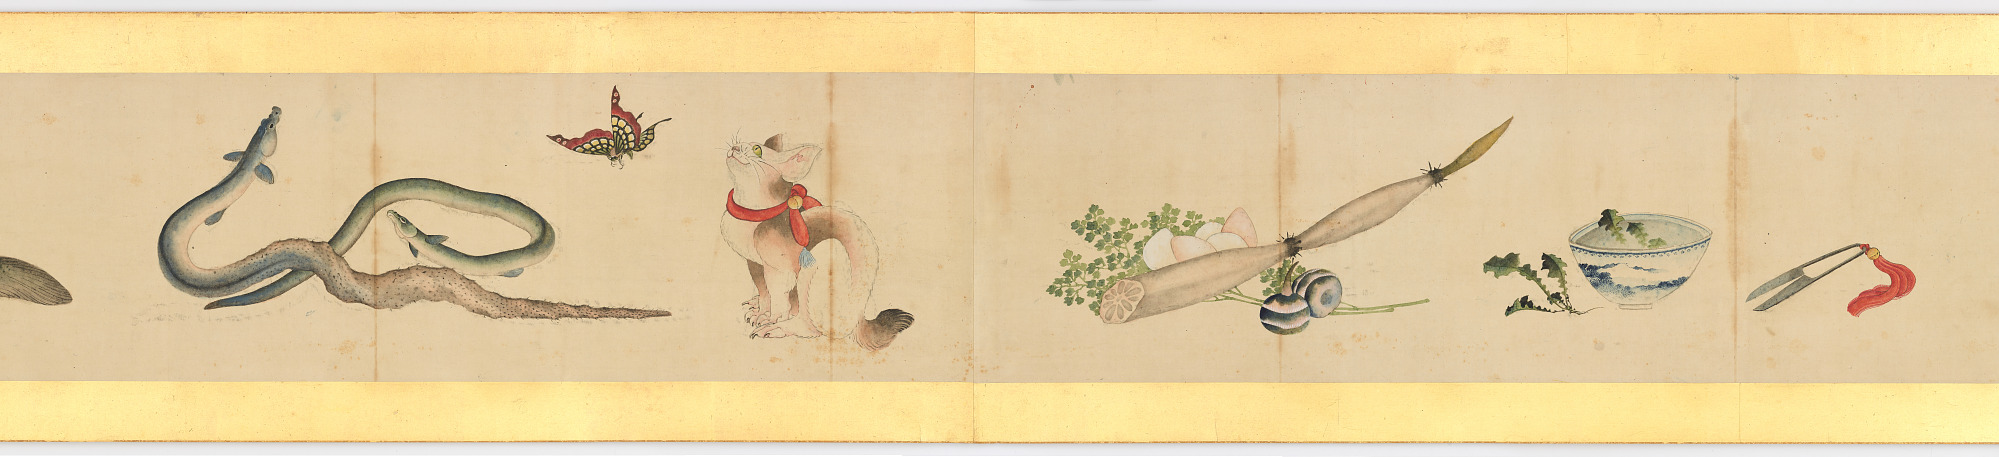 Handscroll with Miscellaneous Images